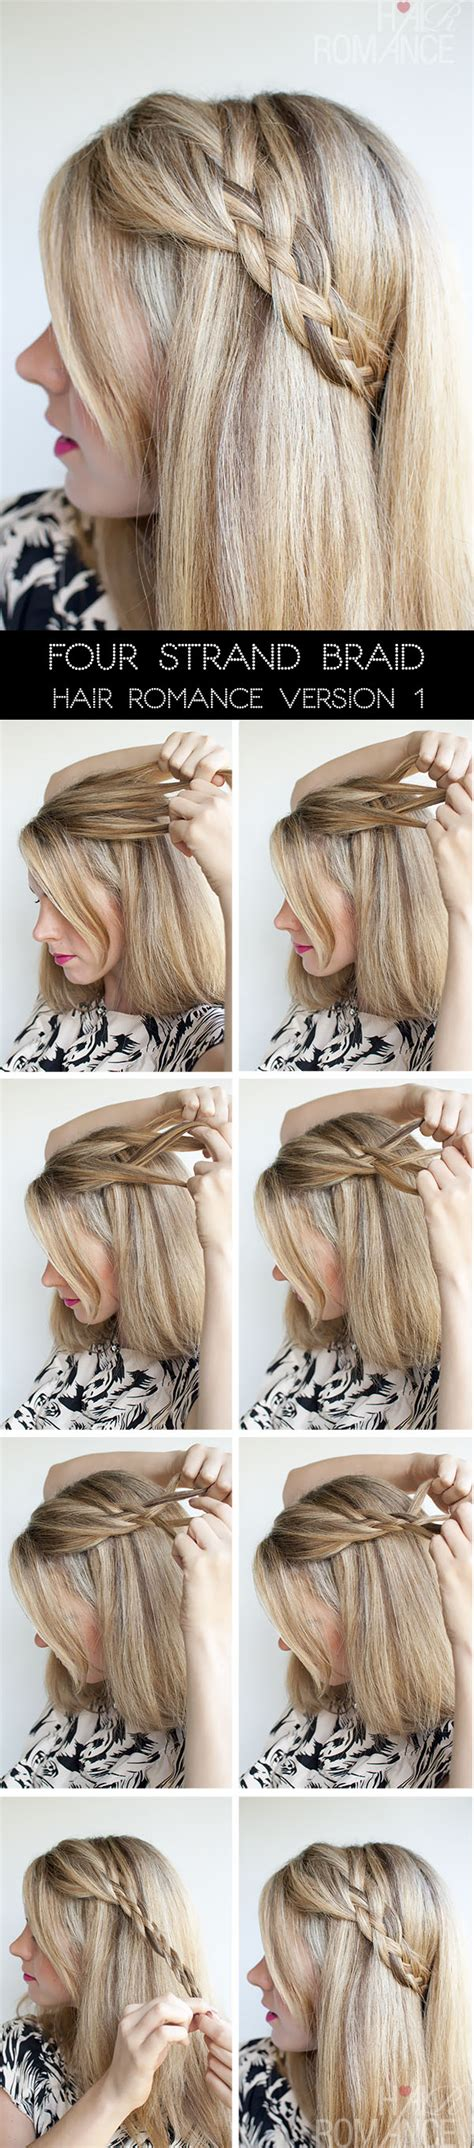 step by step braid hair hairstyle tutorial four strand braids and slide up